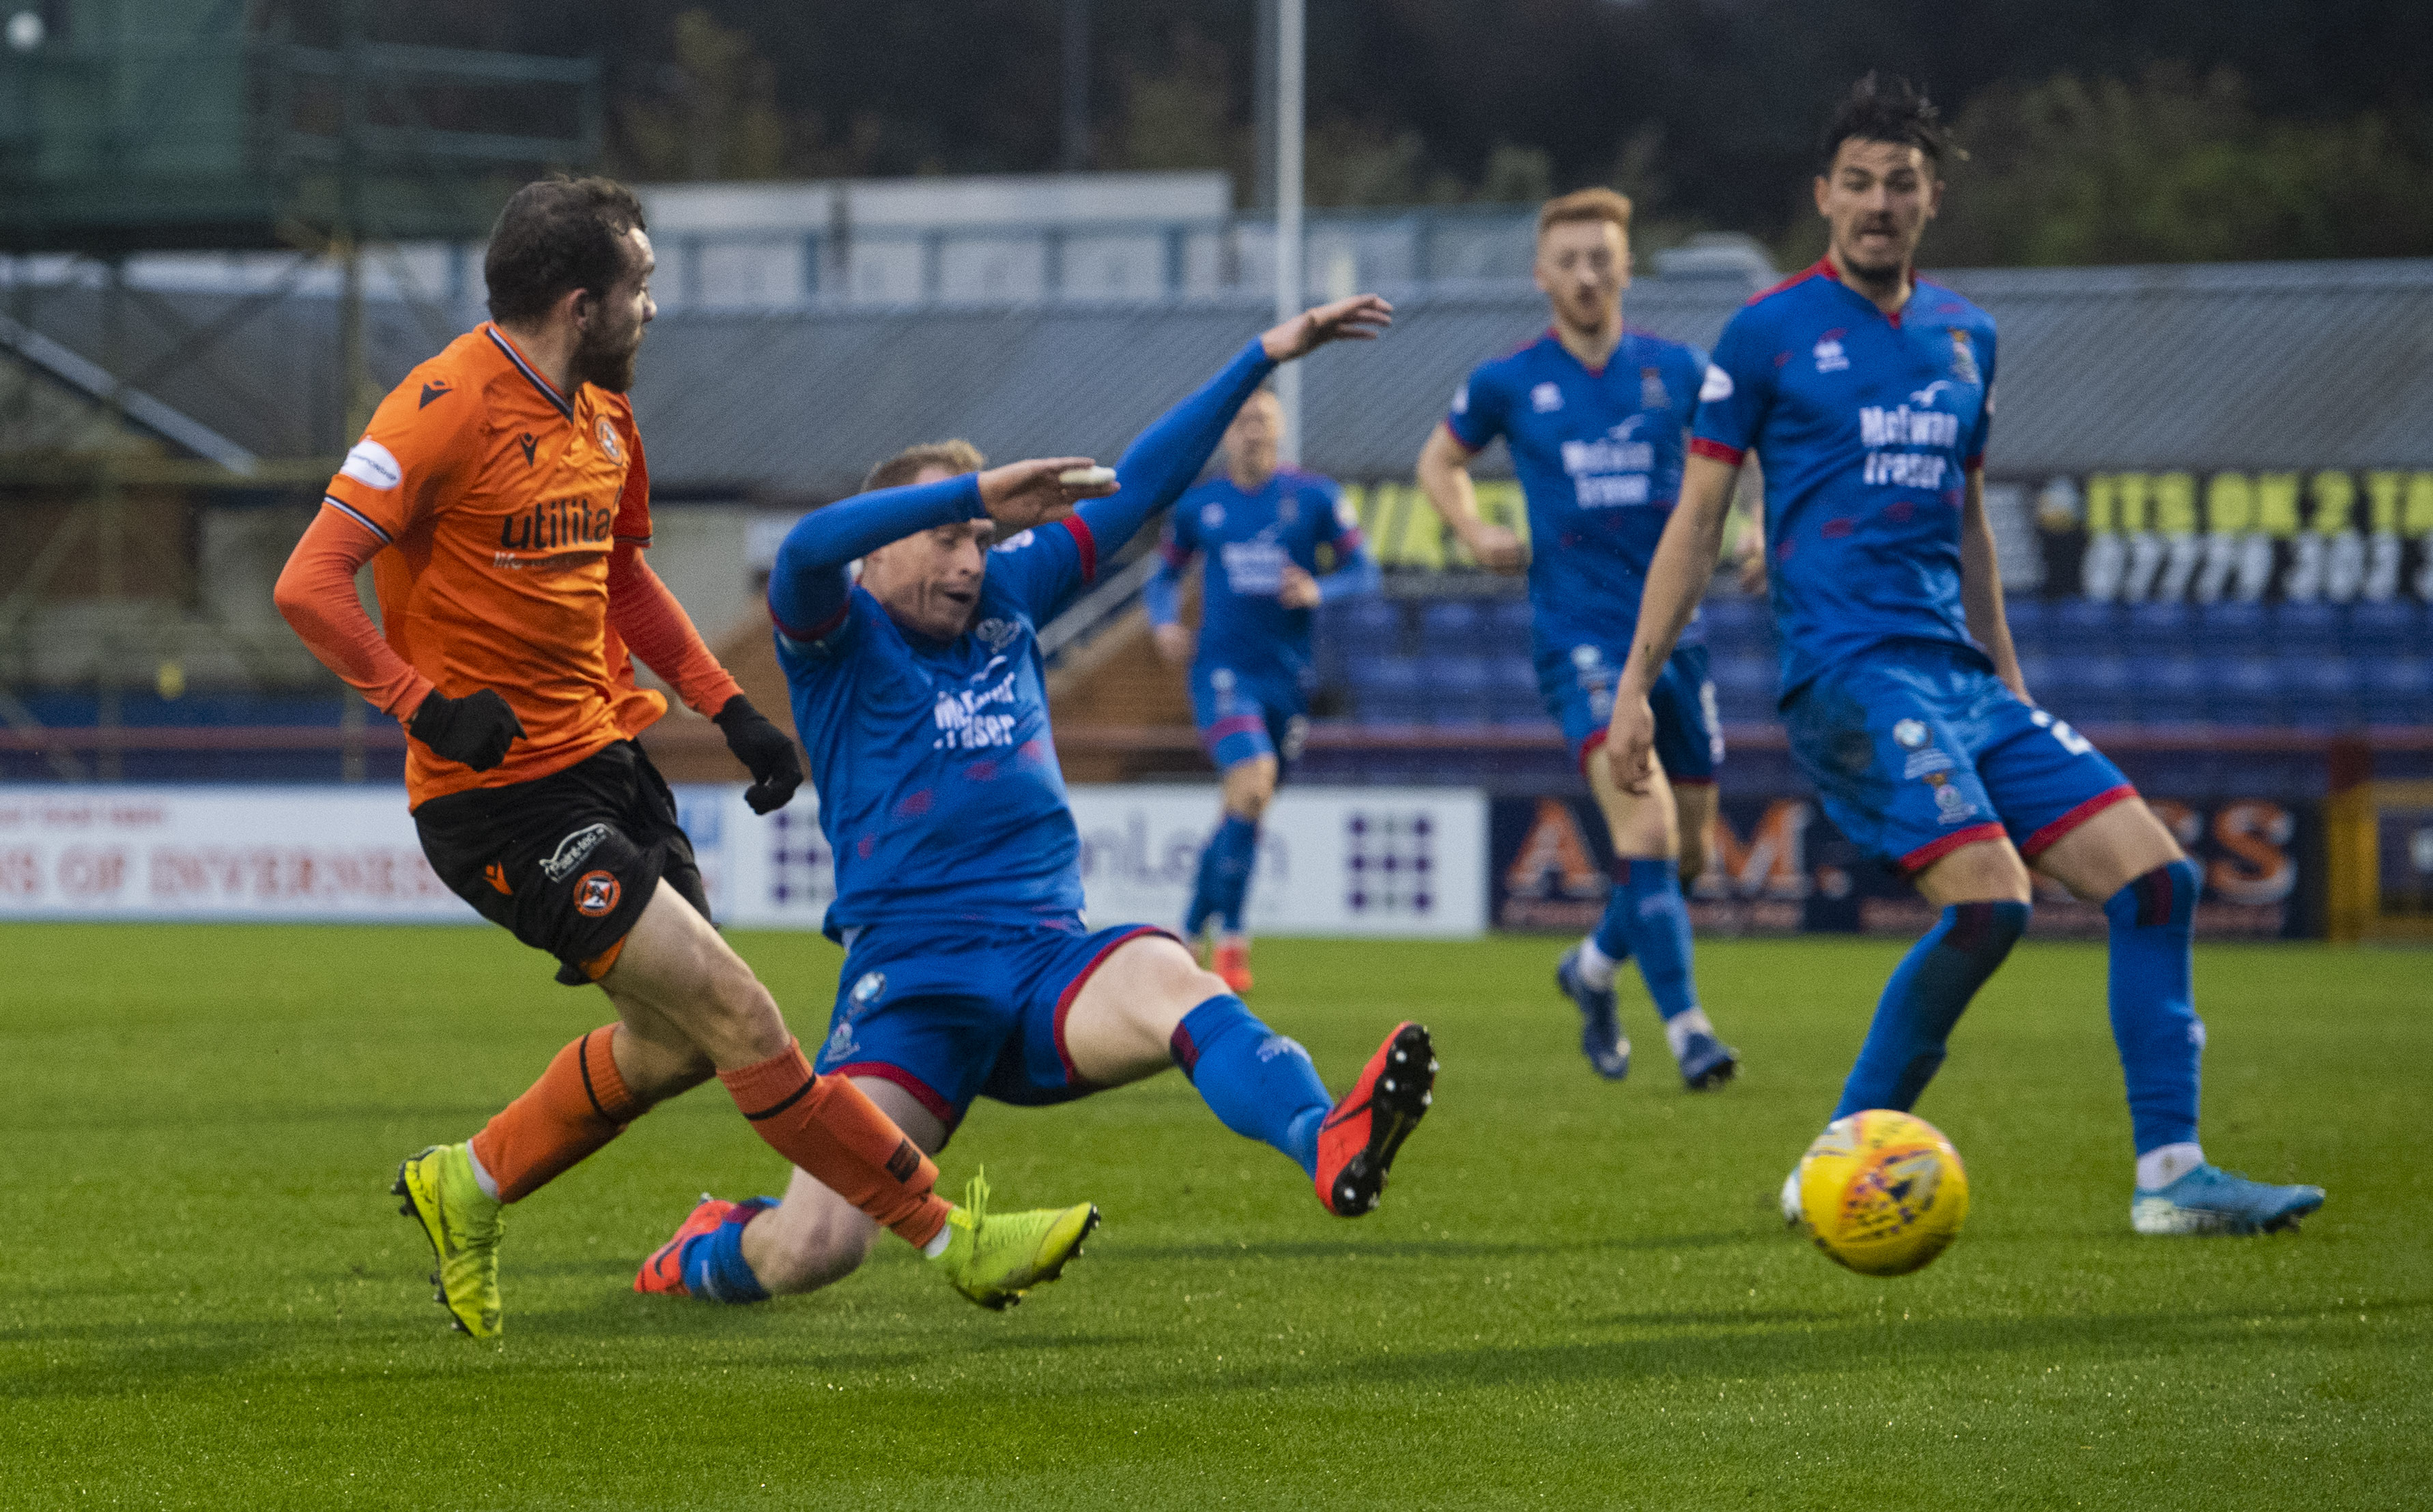 Dundee Utd's Paul McMullan's shot is deflected into the goal off Inverness' Shaun Rooney to make it 1-0.